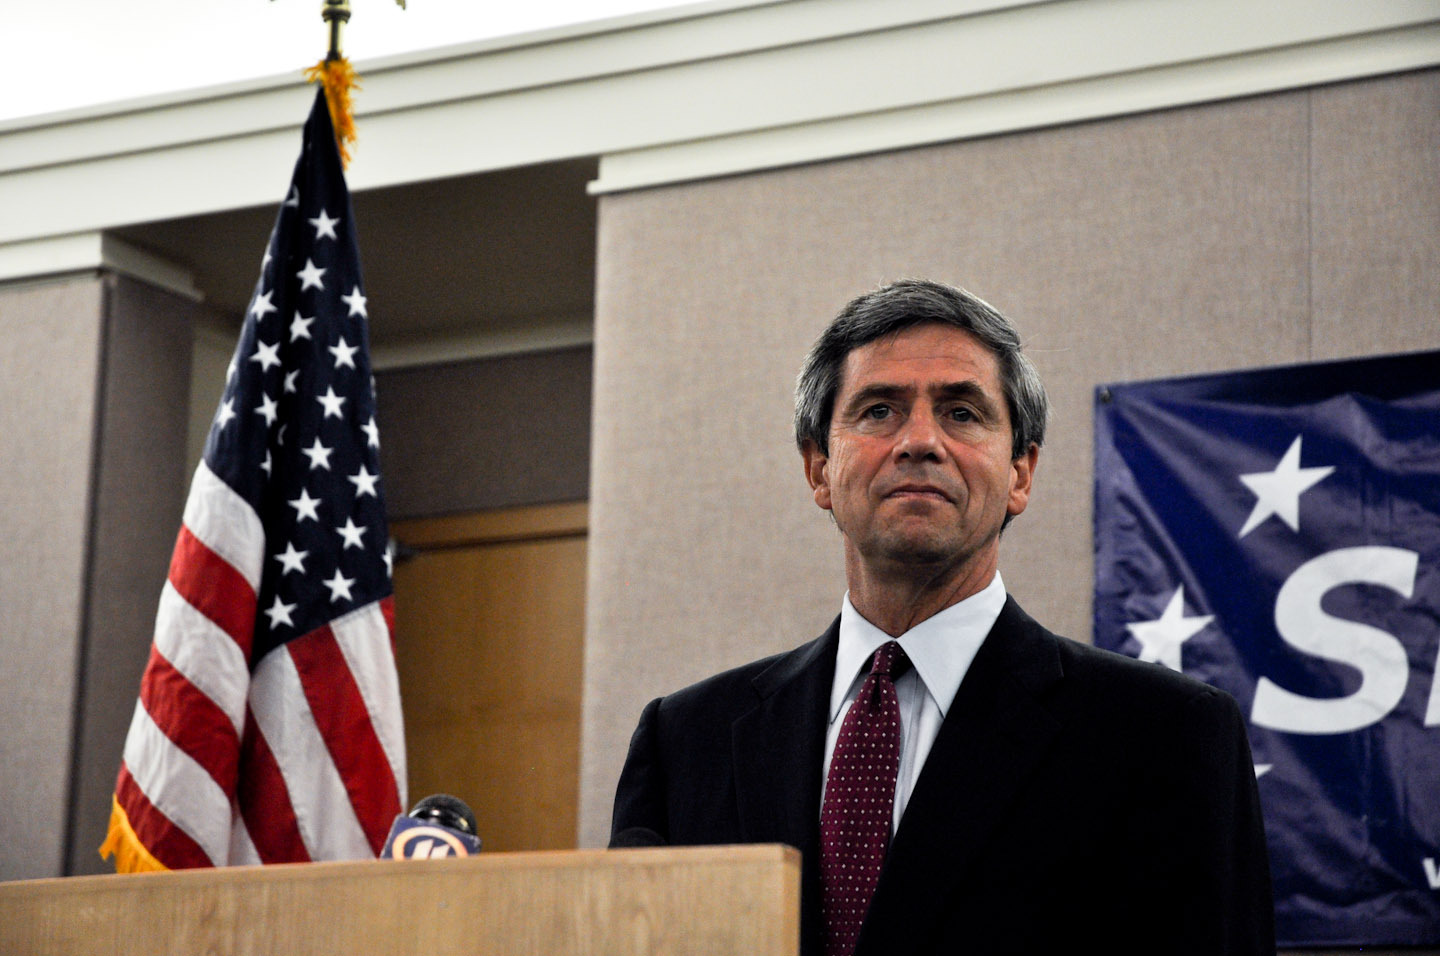 Sestak stands at the podium during his speech. (credit: Patrick Gage Kelley/Contributing Editor)